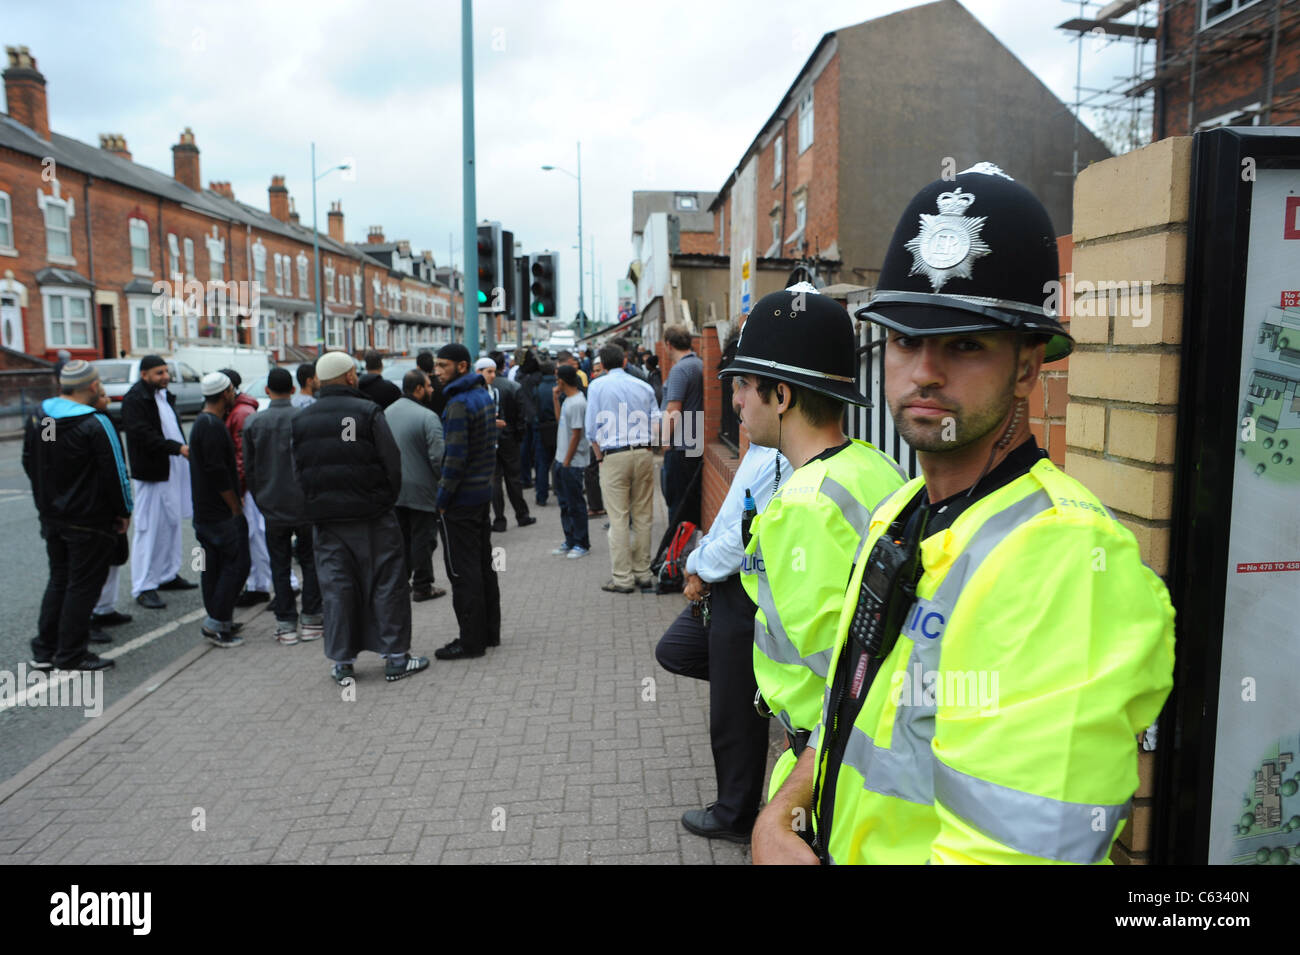 Police deployed near the Dudley Rd mosque in Birmingham's winson green area, where 3 young Asian men were killed - Stock Image